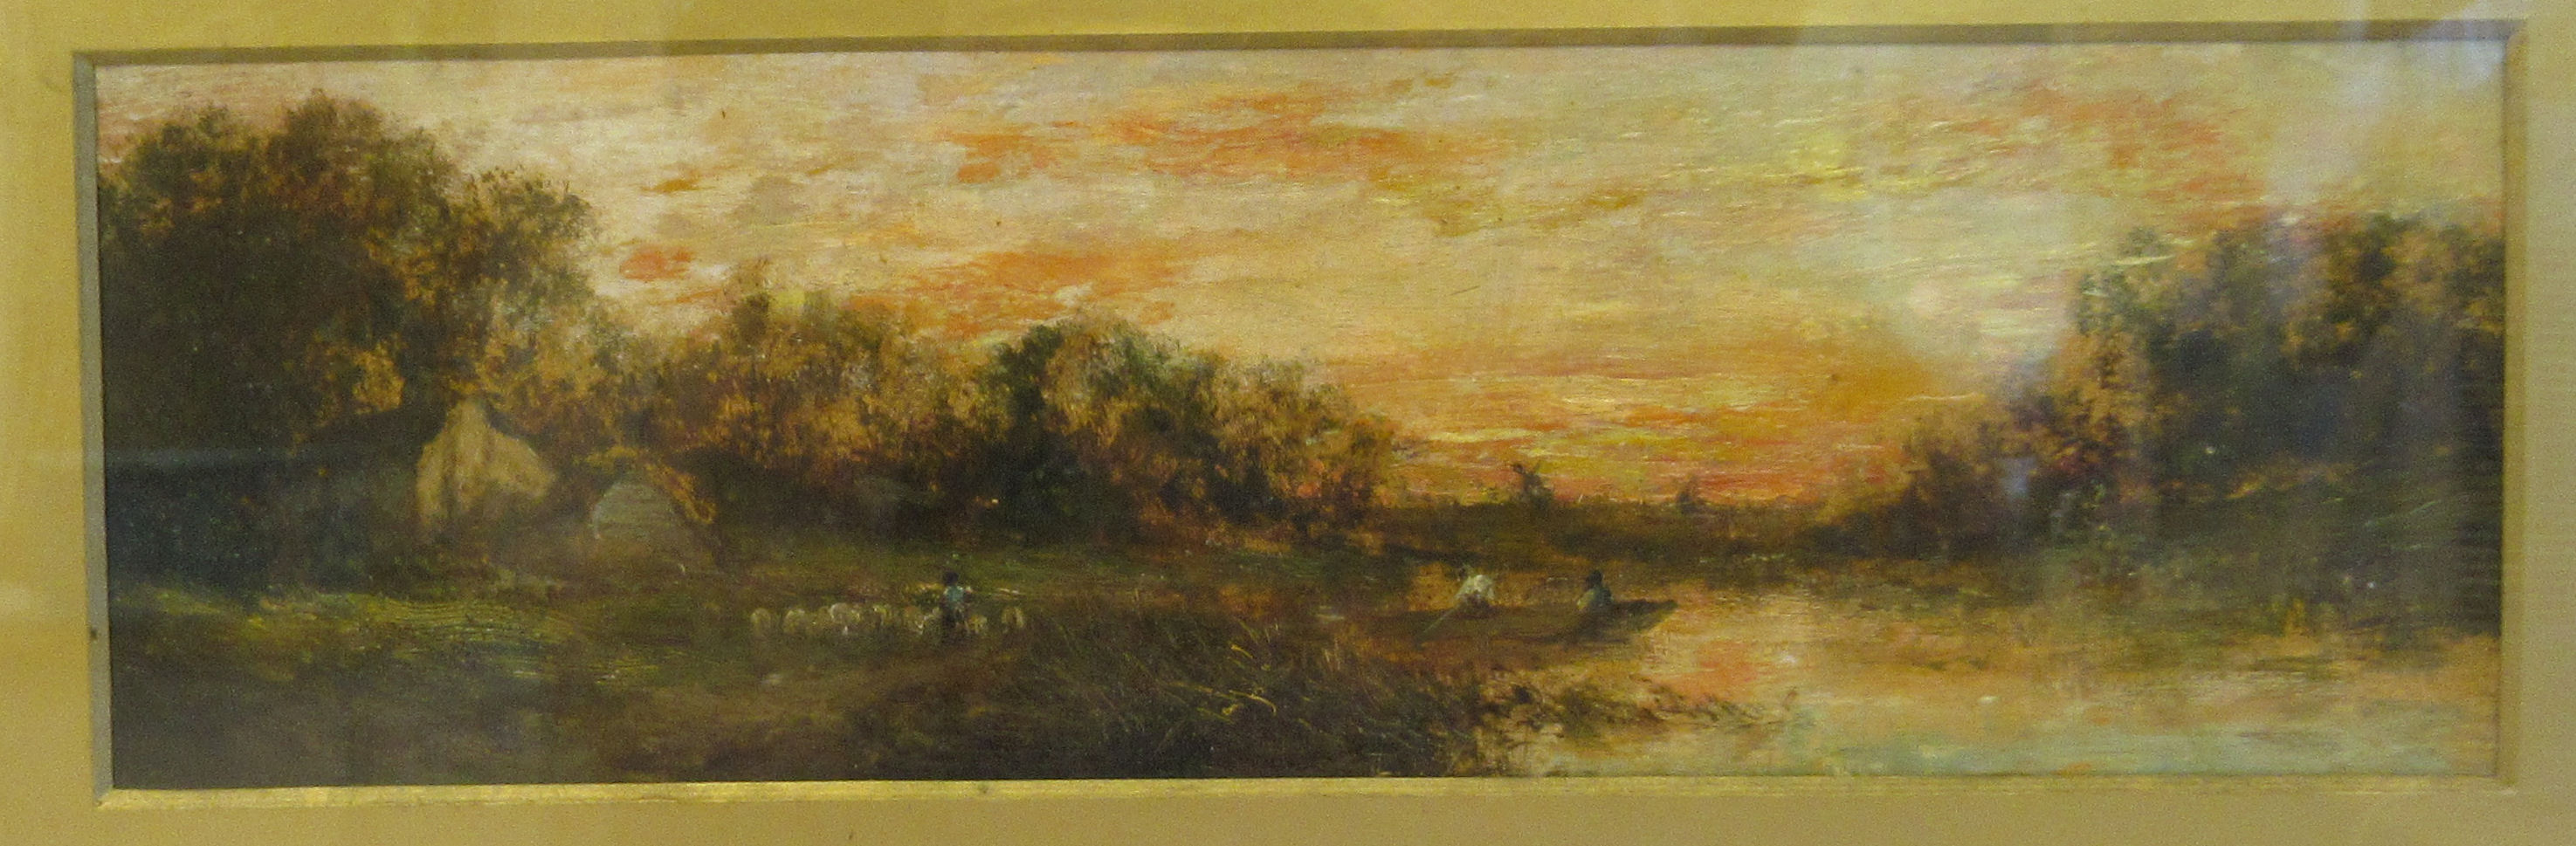 European School - a landscape at sunset with figures in a punt and another tending sheep on a - Image 2 of 5